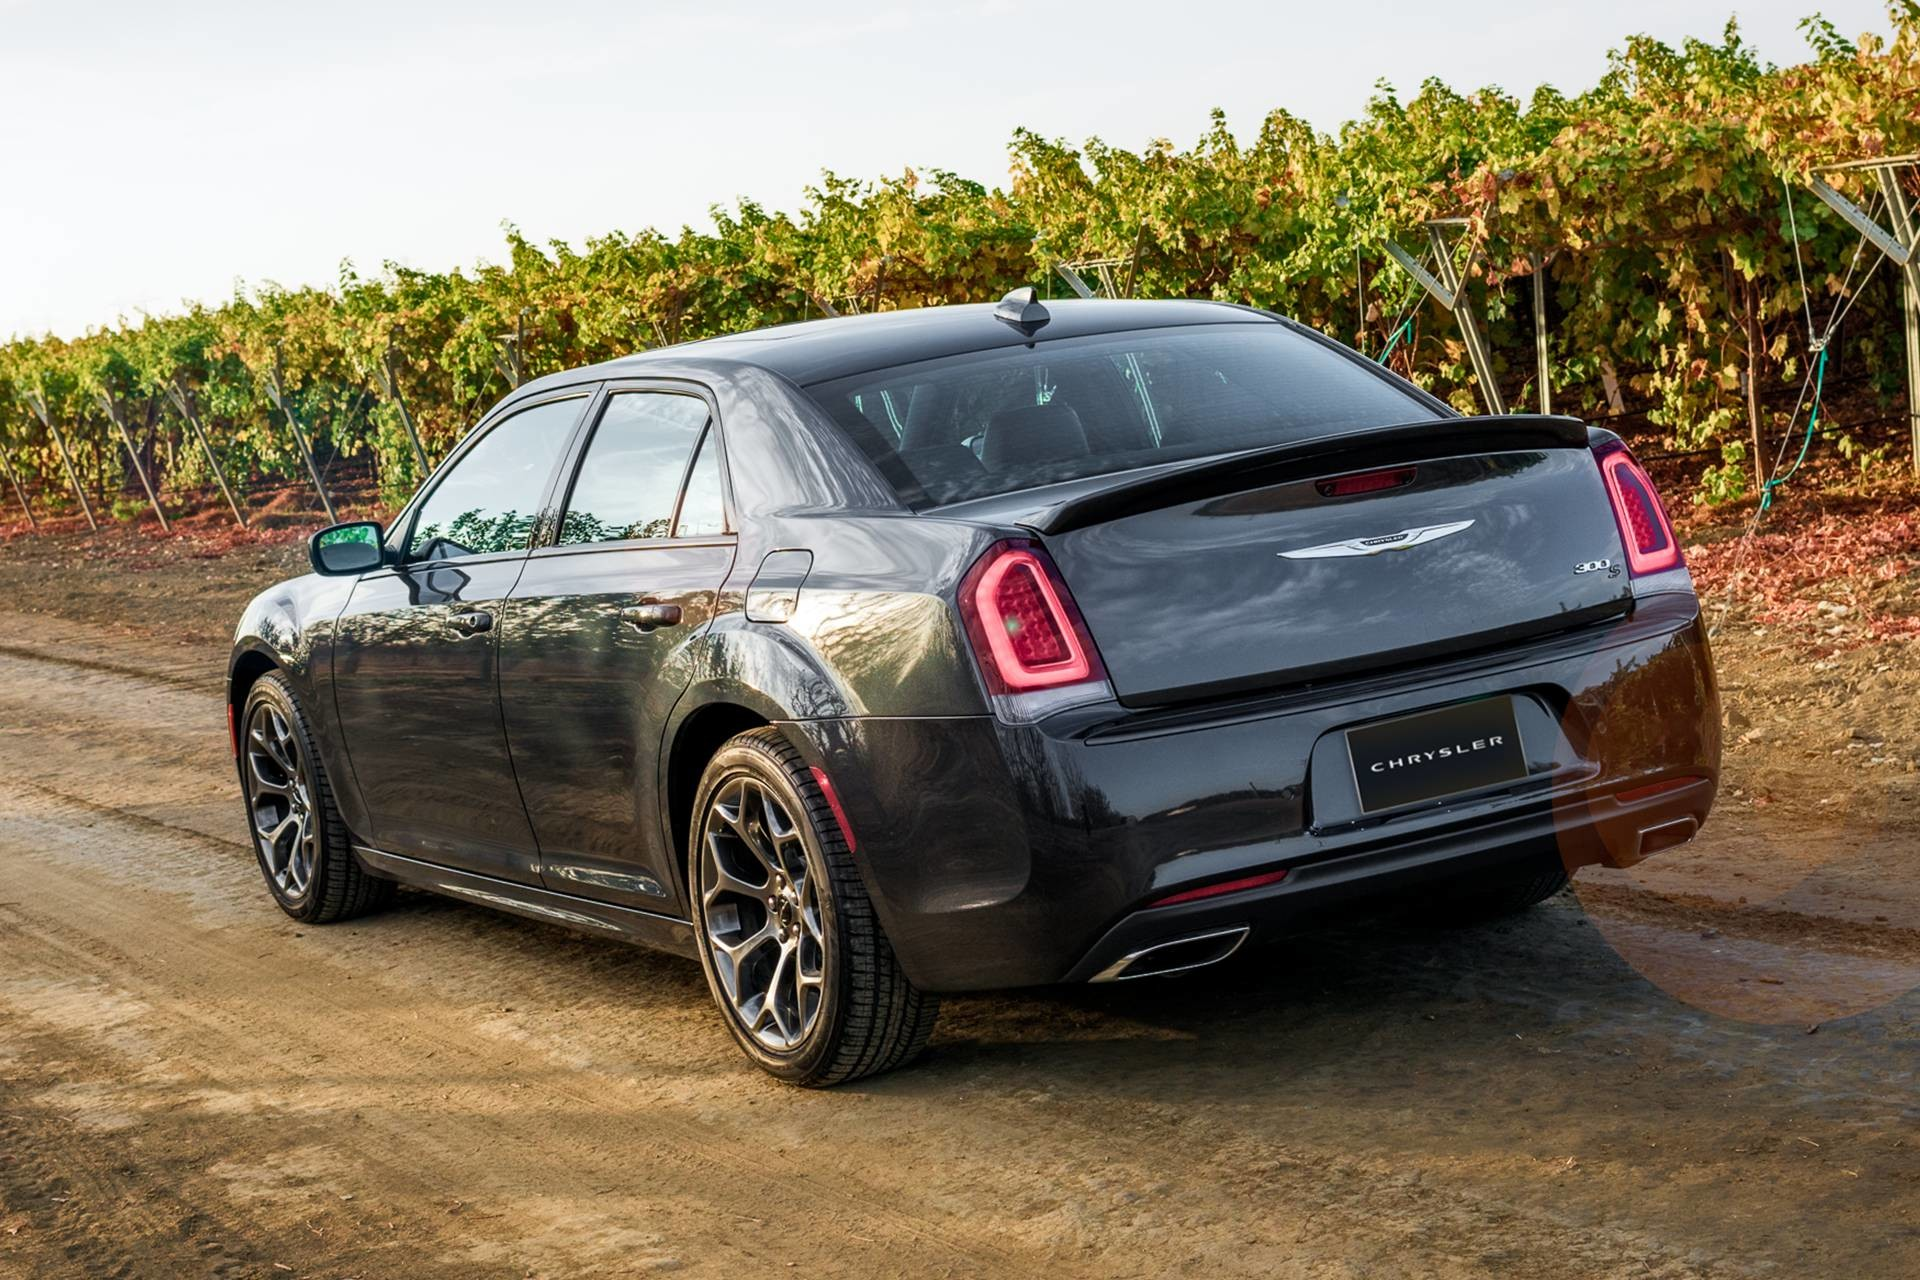 2019 Chrysler 300 with impressive fuel economy2019 Chrysler 300 driving down a country road